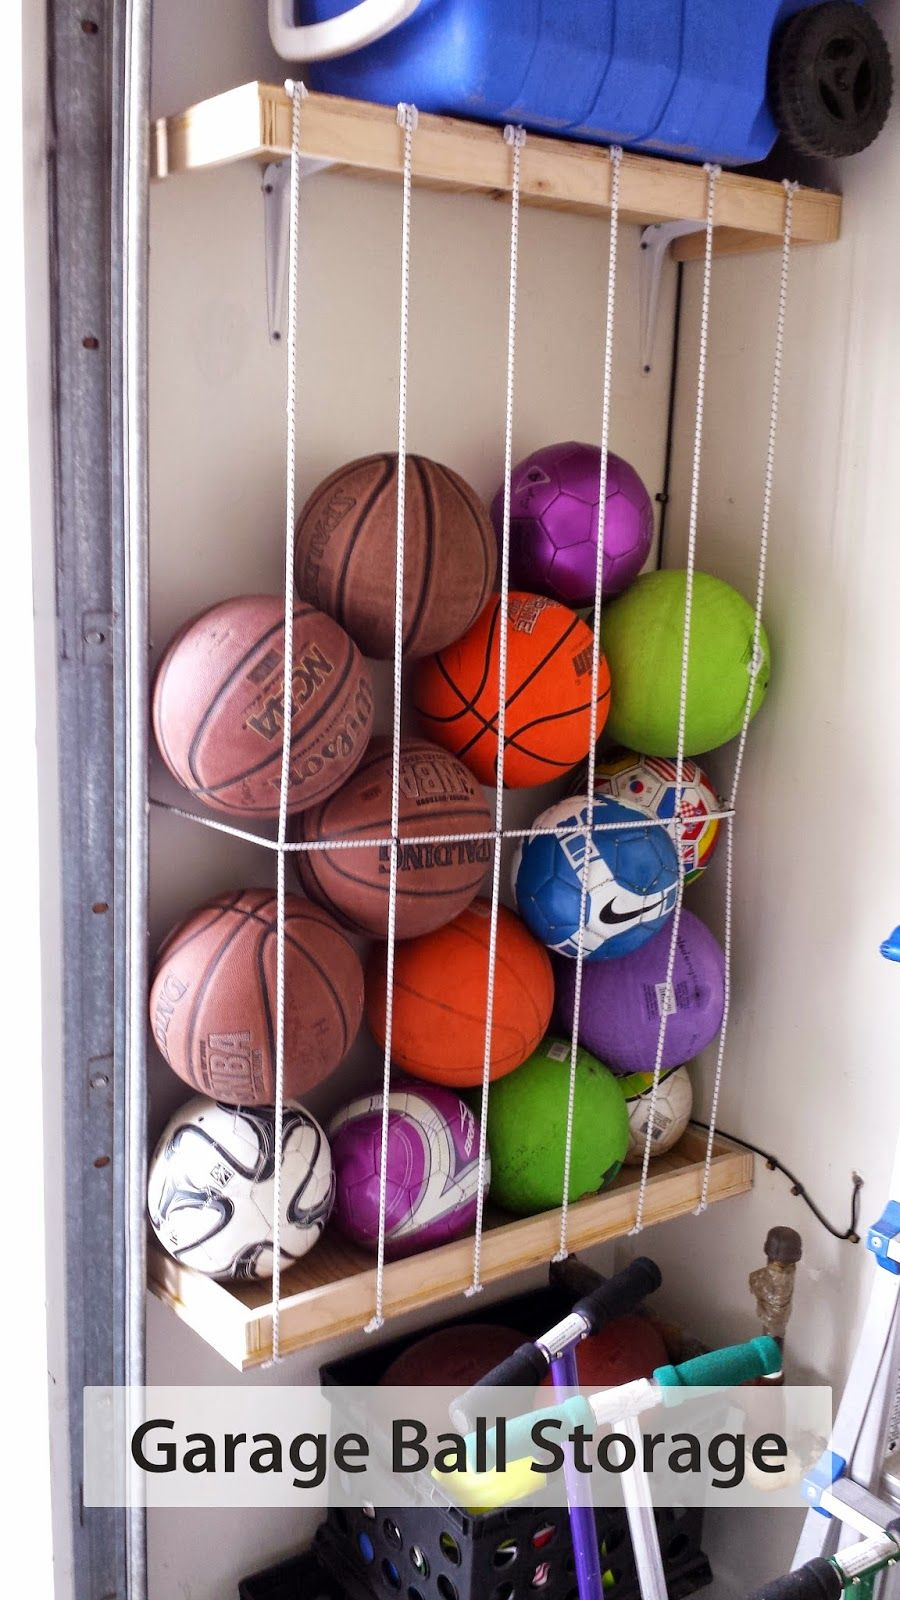 ball superb size garage full splendid display sports trophy ideas bloggus shelves storage memorabilia shelf pictures